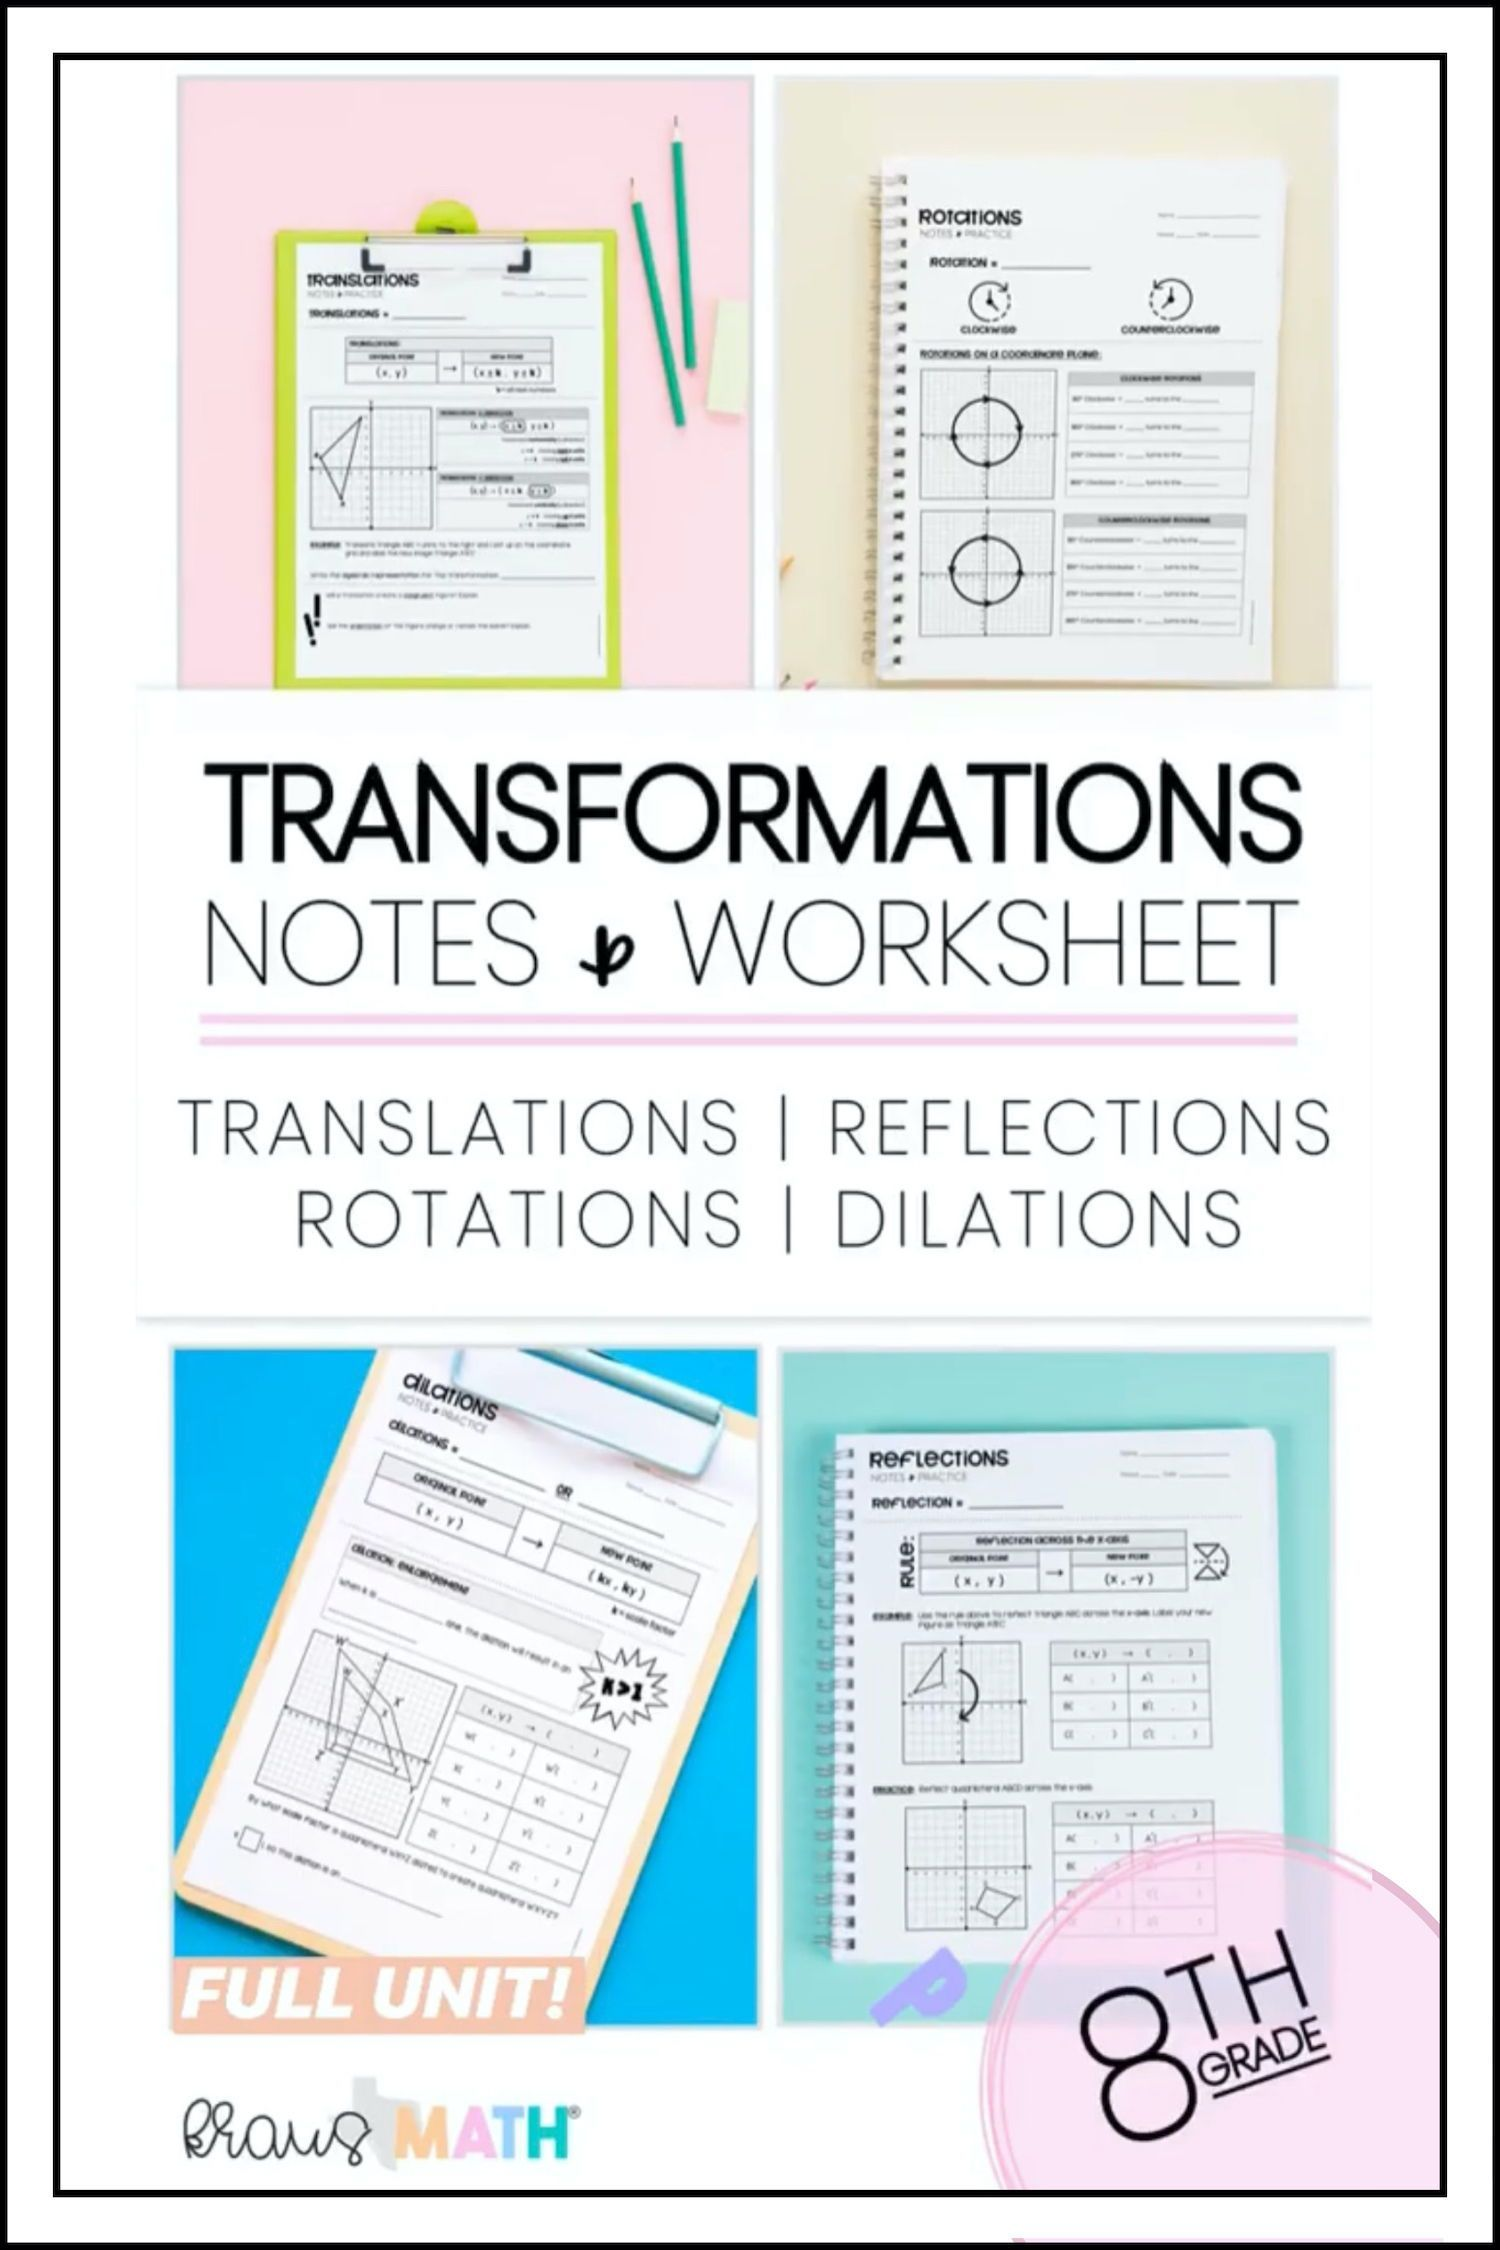 Transformations Notes Practice Worksheets Kraus Math Math Facts 8th Grade Math Middle School Math